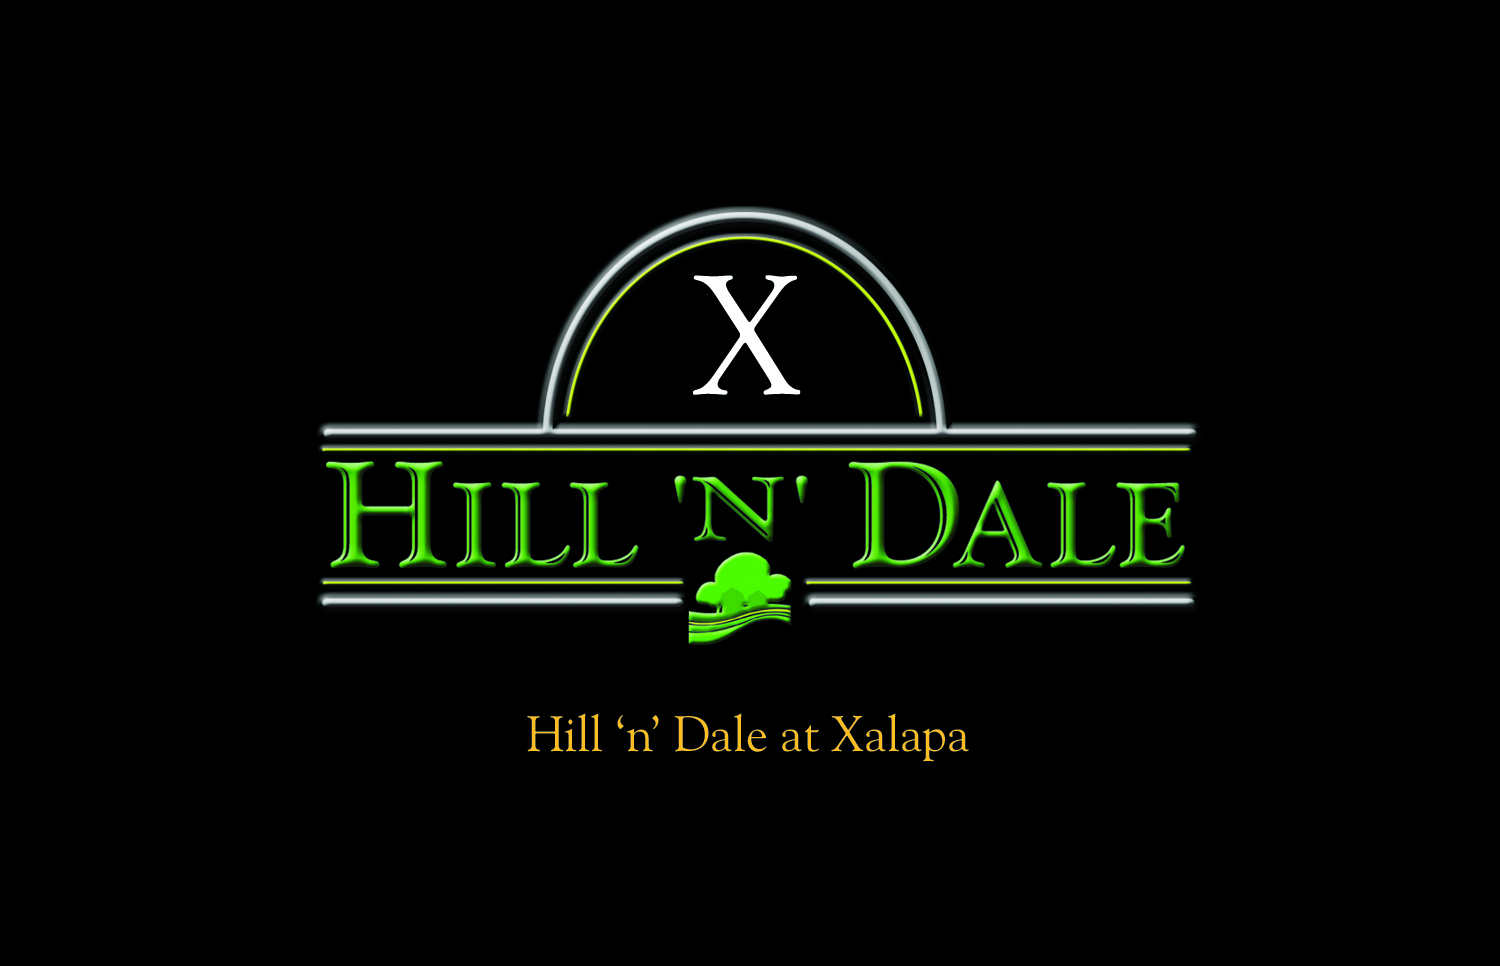 Hill 'N' Dale at Xalapa